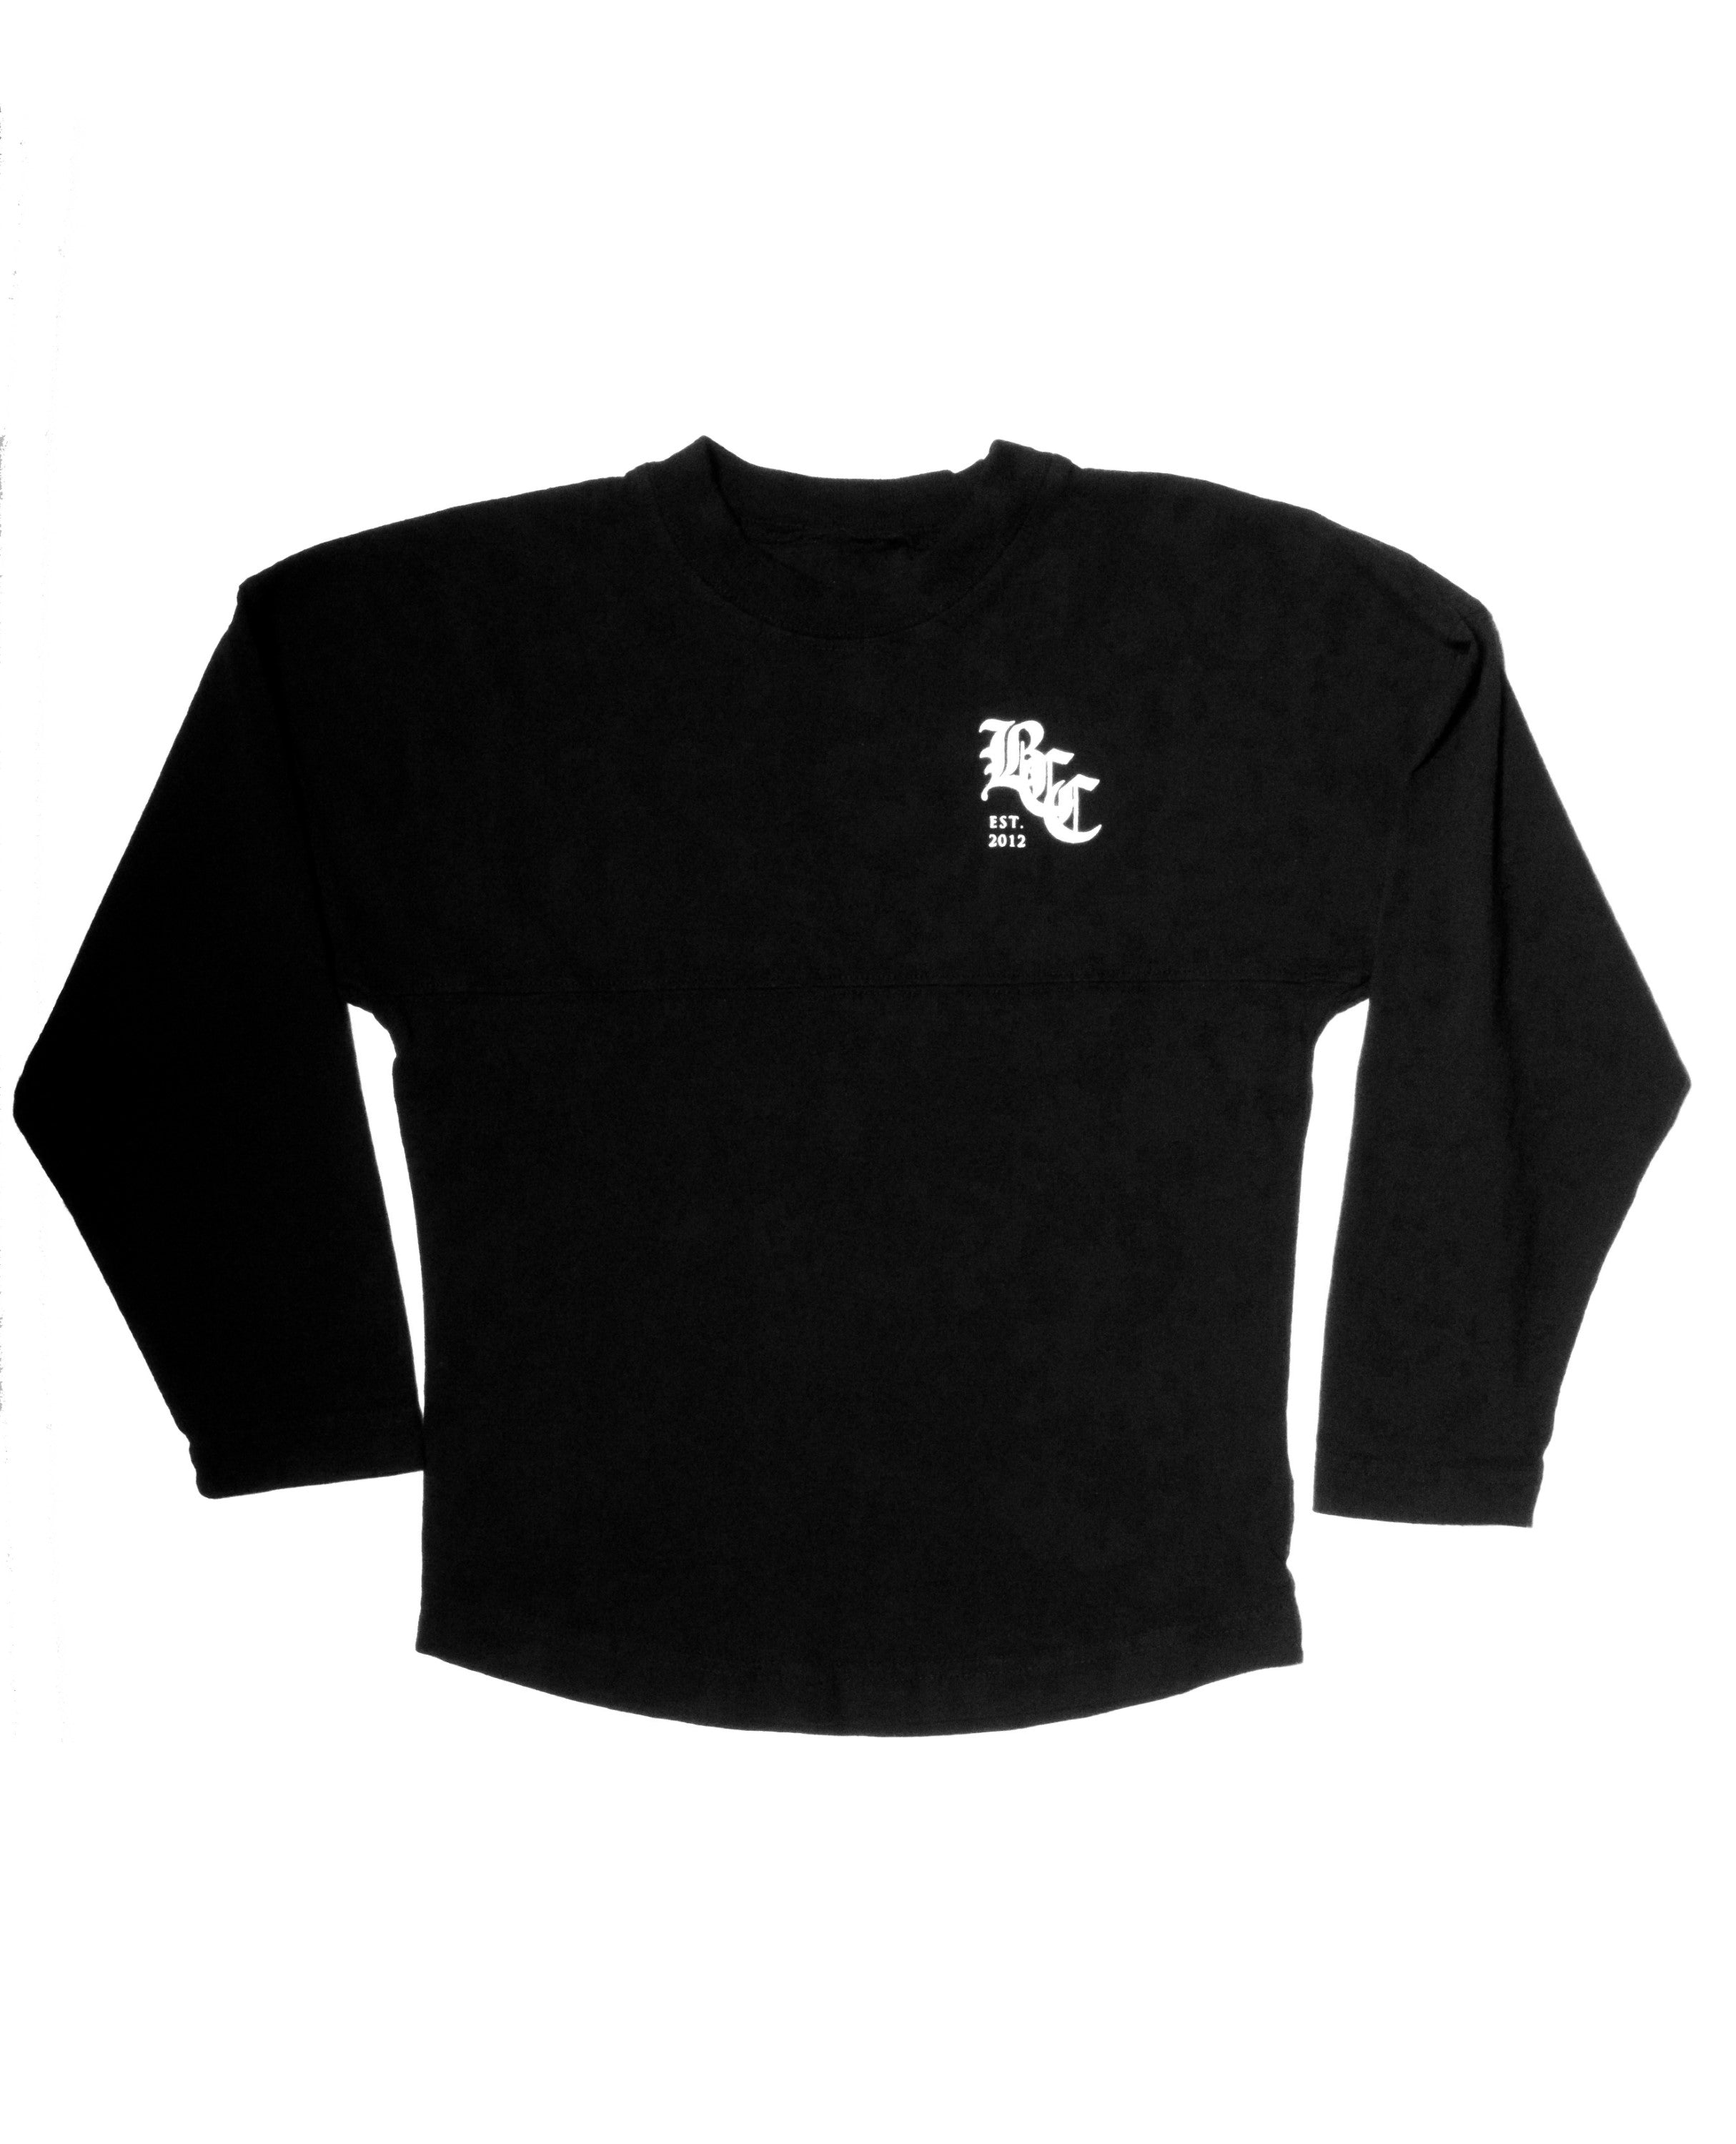 Kingdom - Youth Jersey Sweater